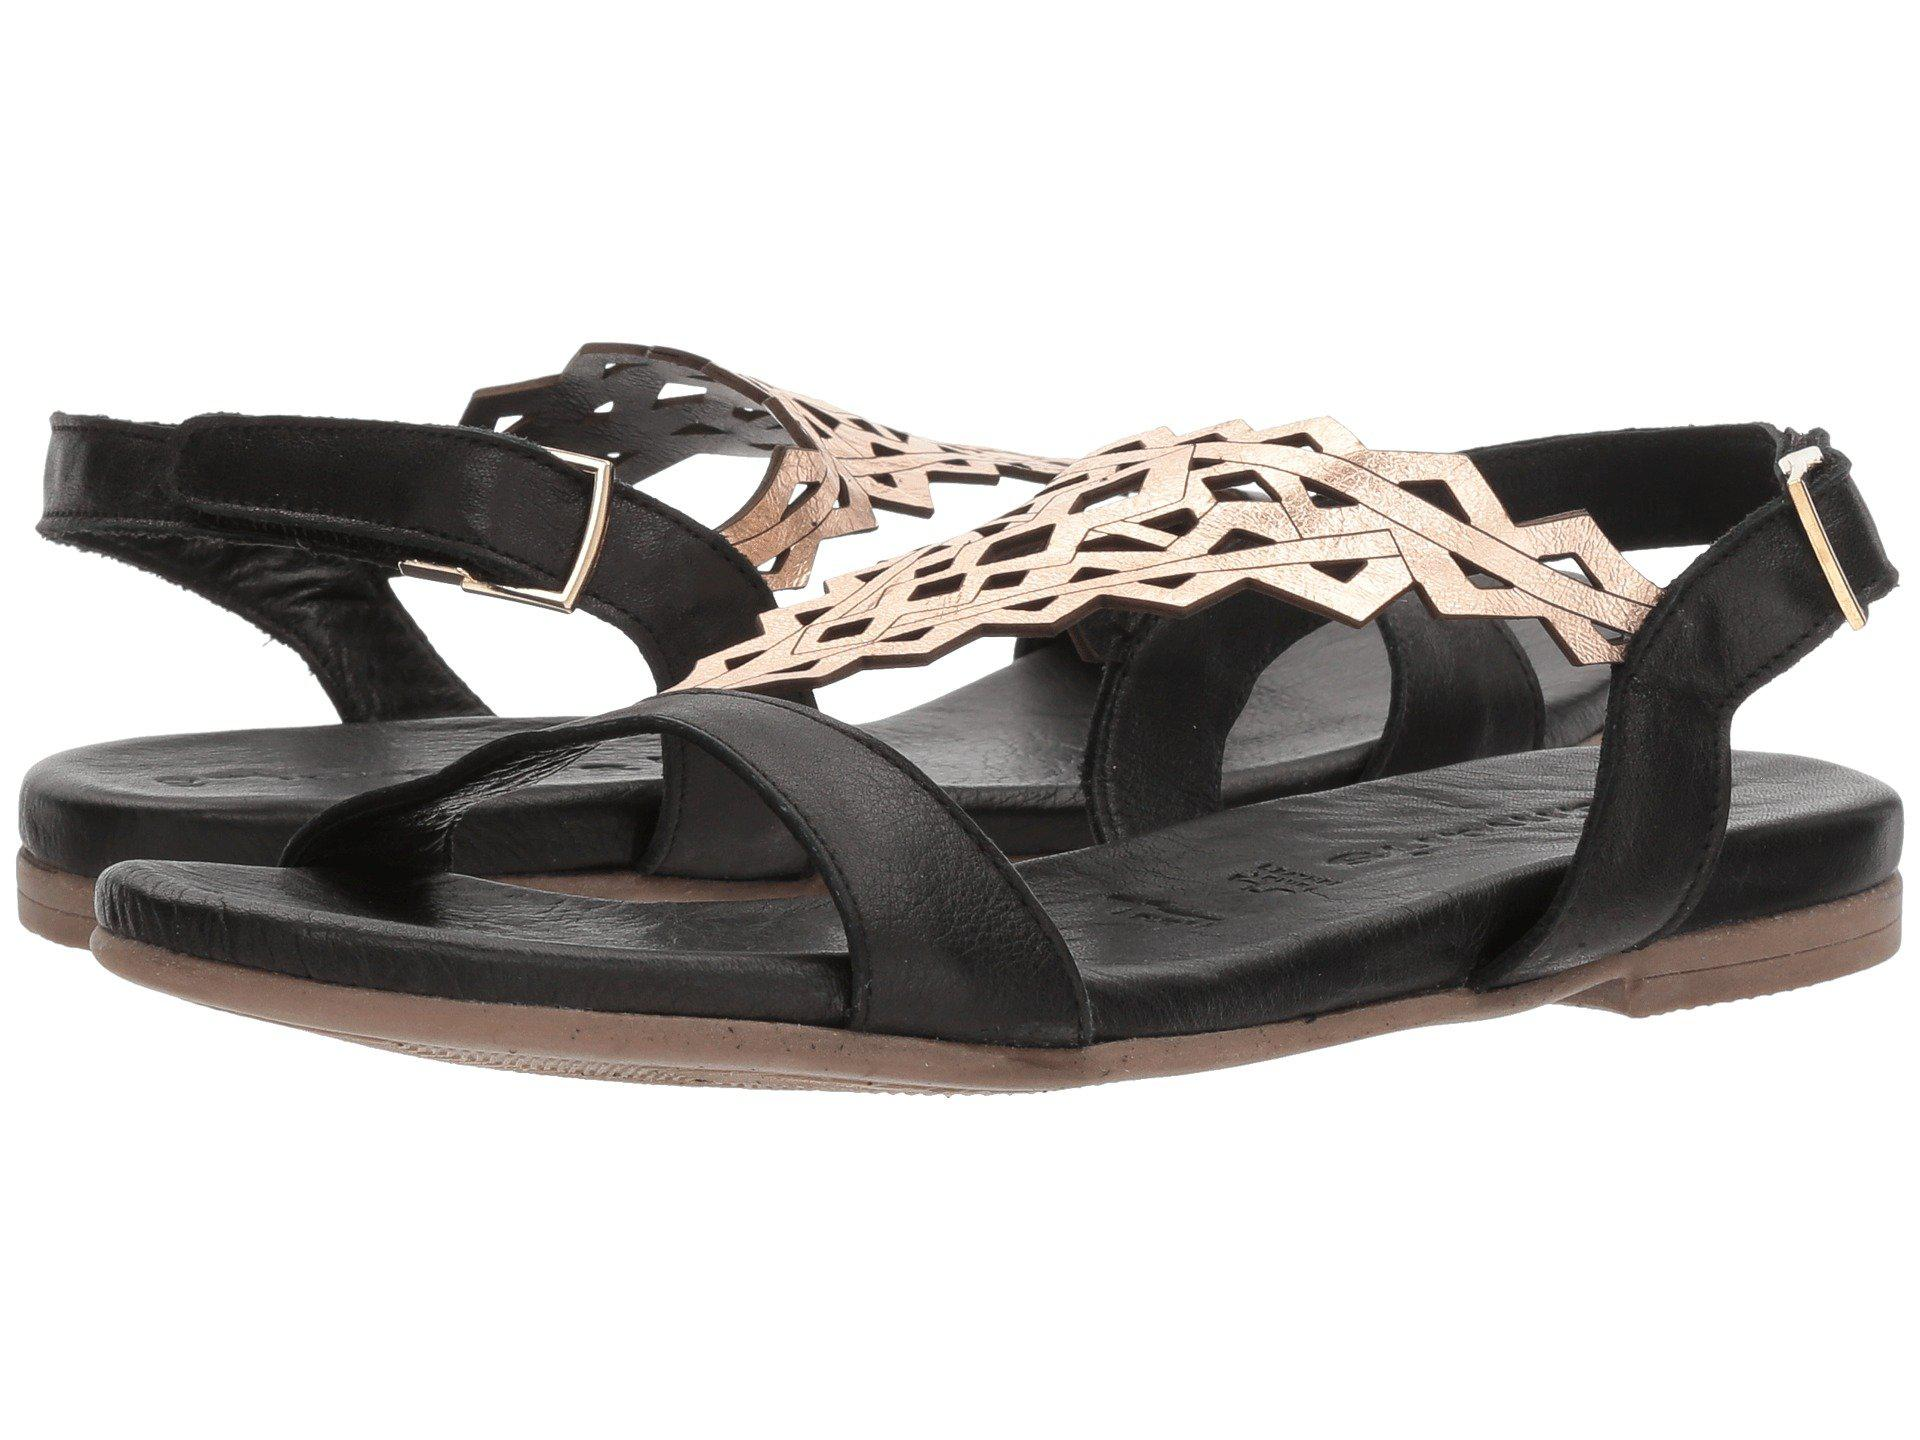 Tamaris Silver or Red Leather Beaded Toe Post Ankle Strap Sandal Clearance Sale